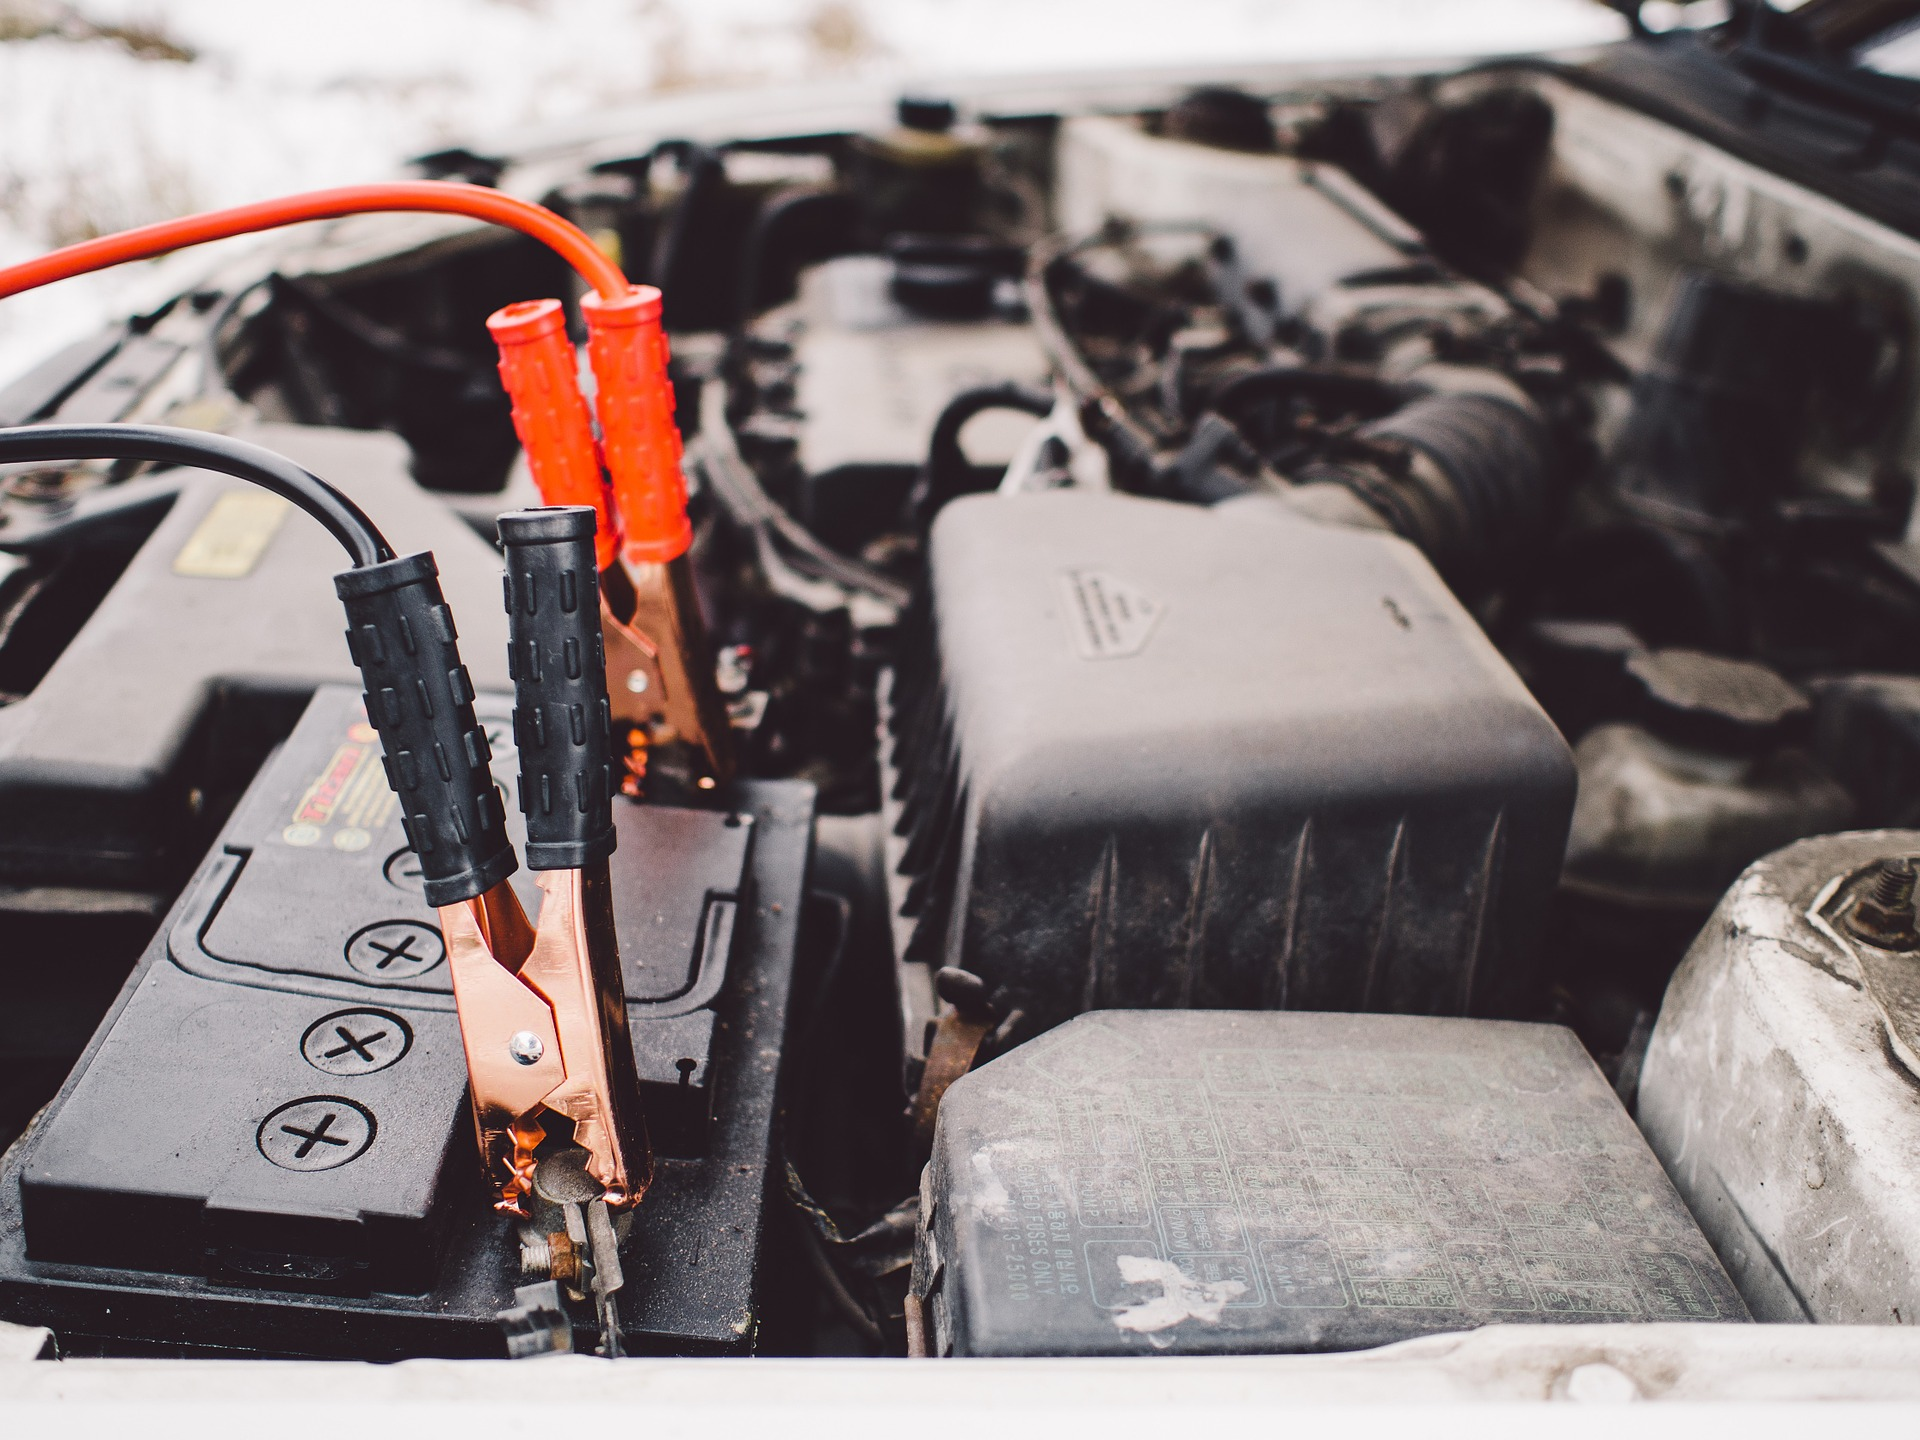 Top 10 Best Jumper Cables for Cars, Trucks and Motorcyles